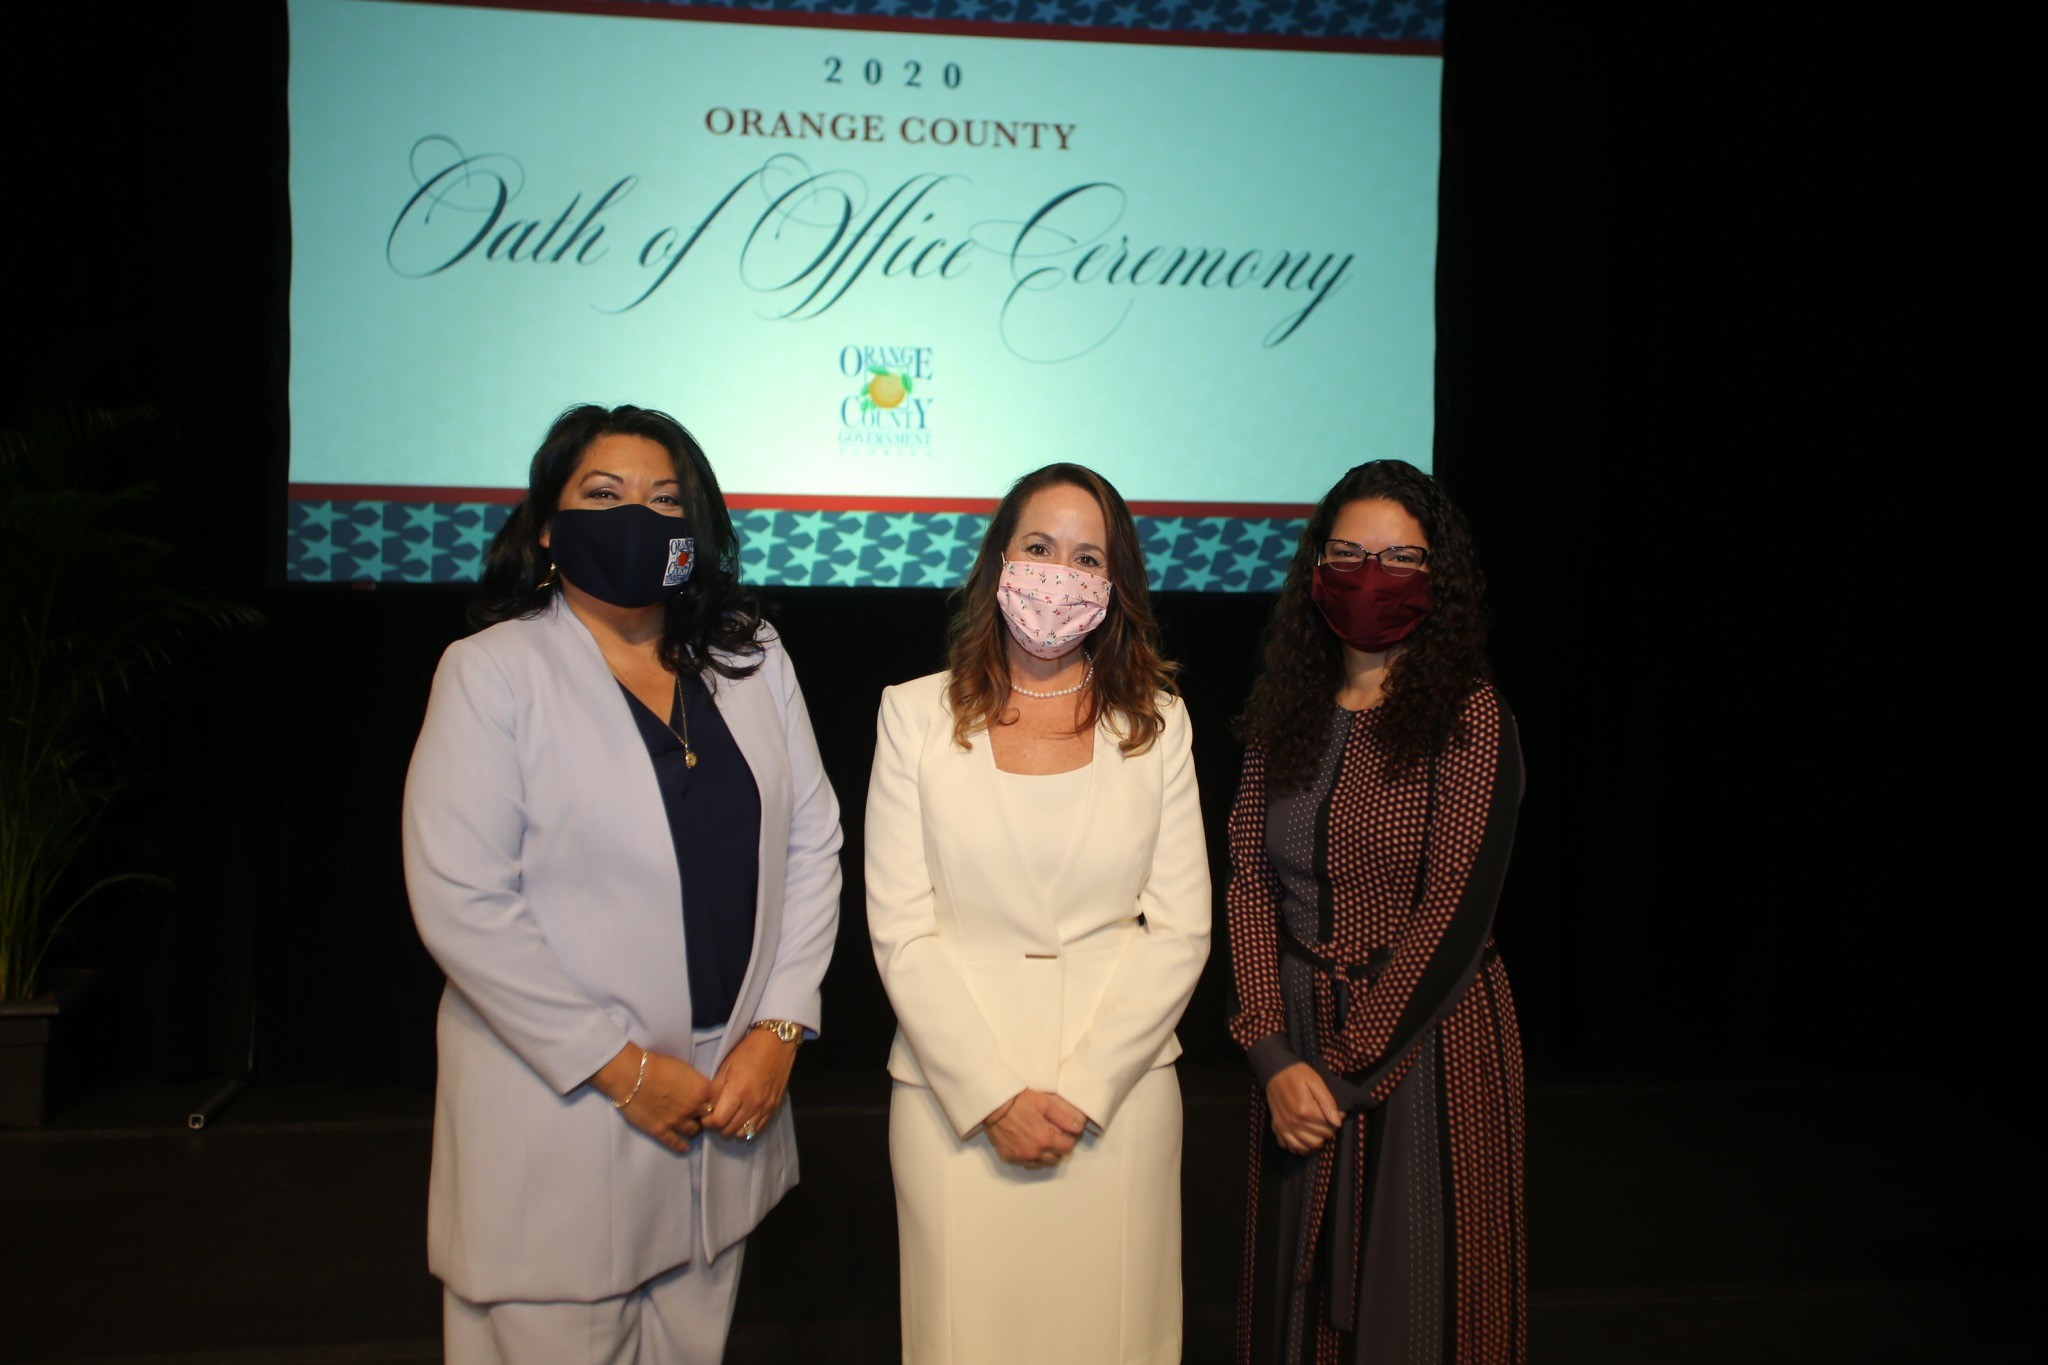 """Three orange county commissioners posing for a photo in front of a screen that reads """"2020 Oath of office Ceremony"""""""